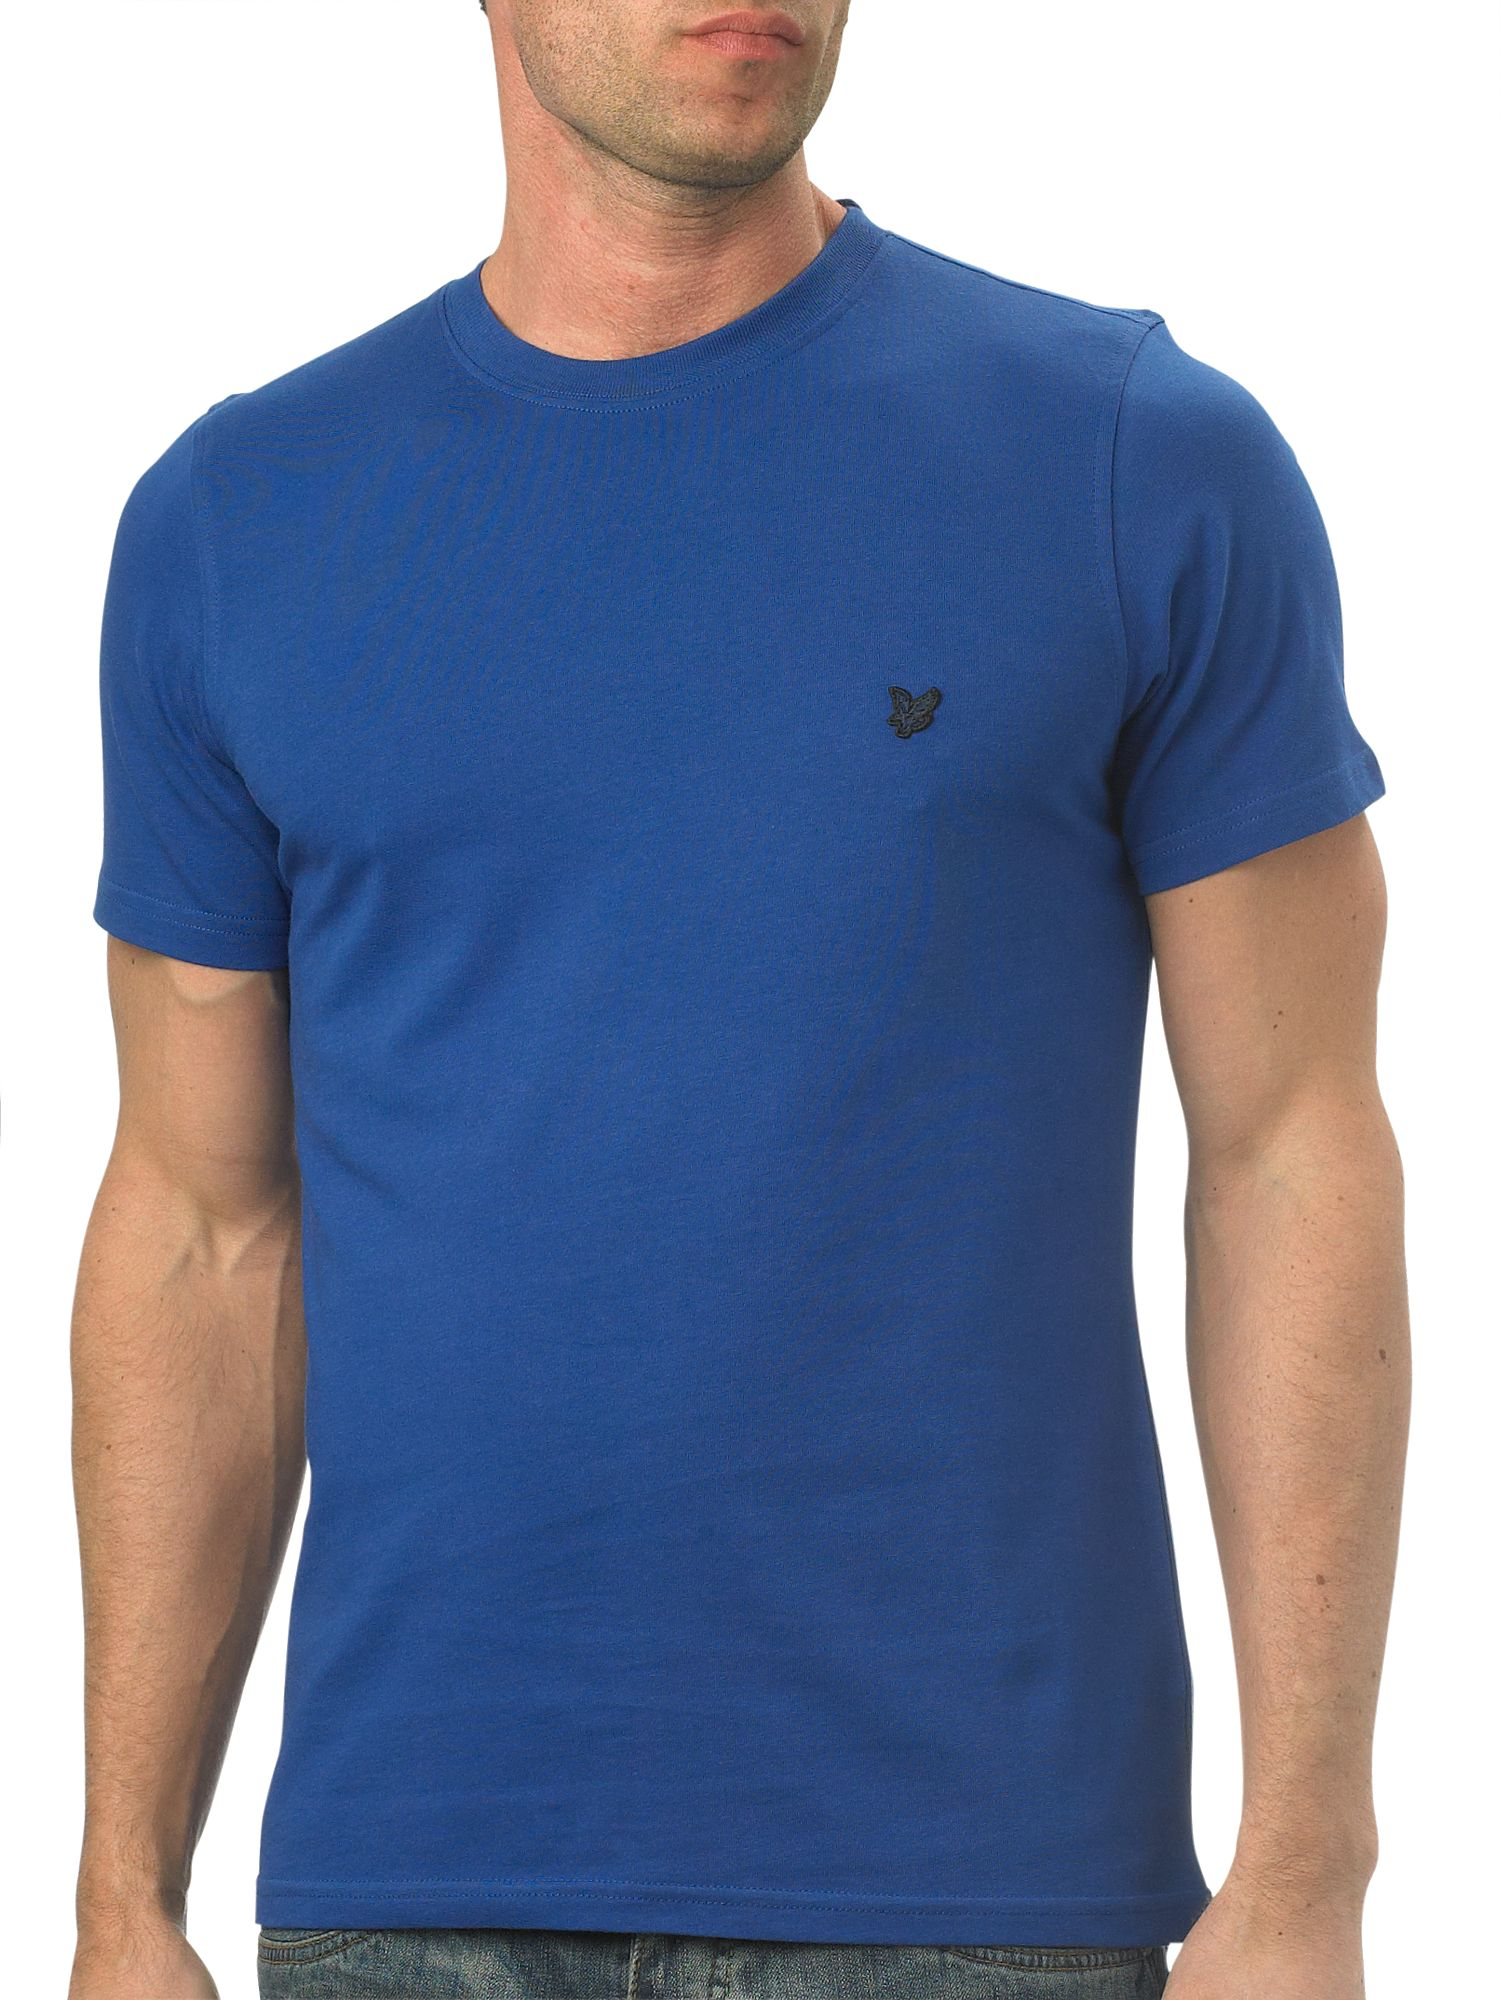 Lyle & Scott Crew neck t-shirt Blue product image